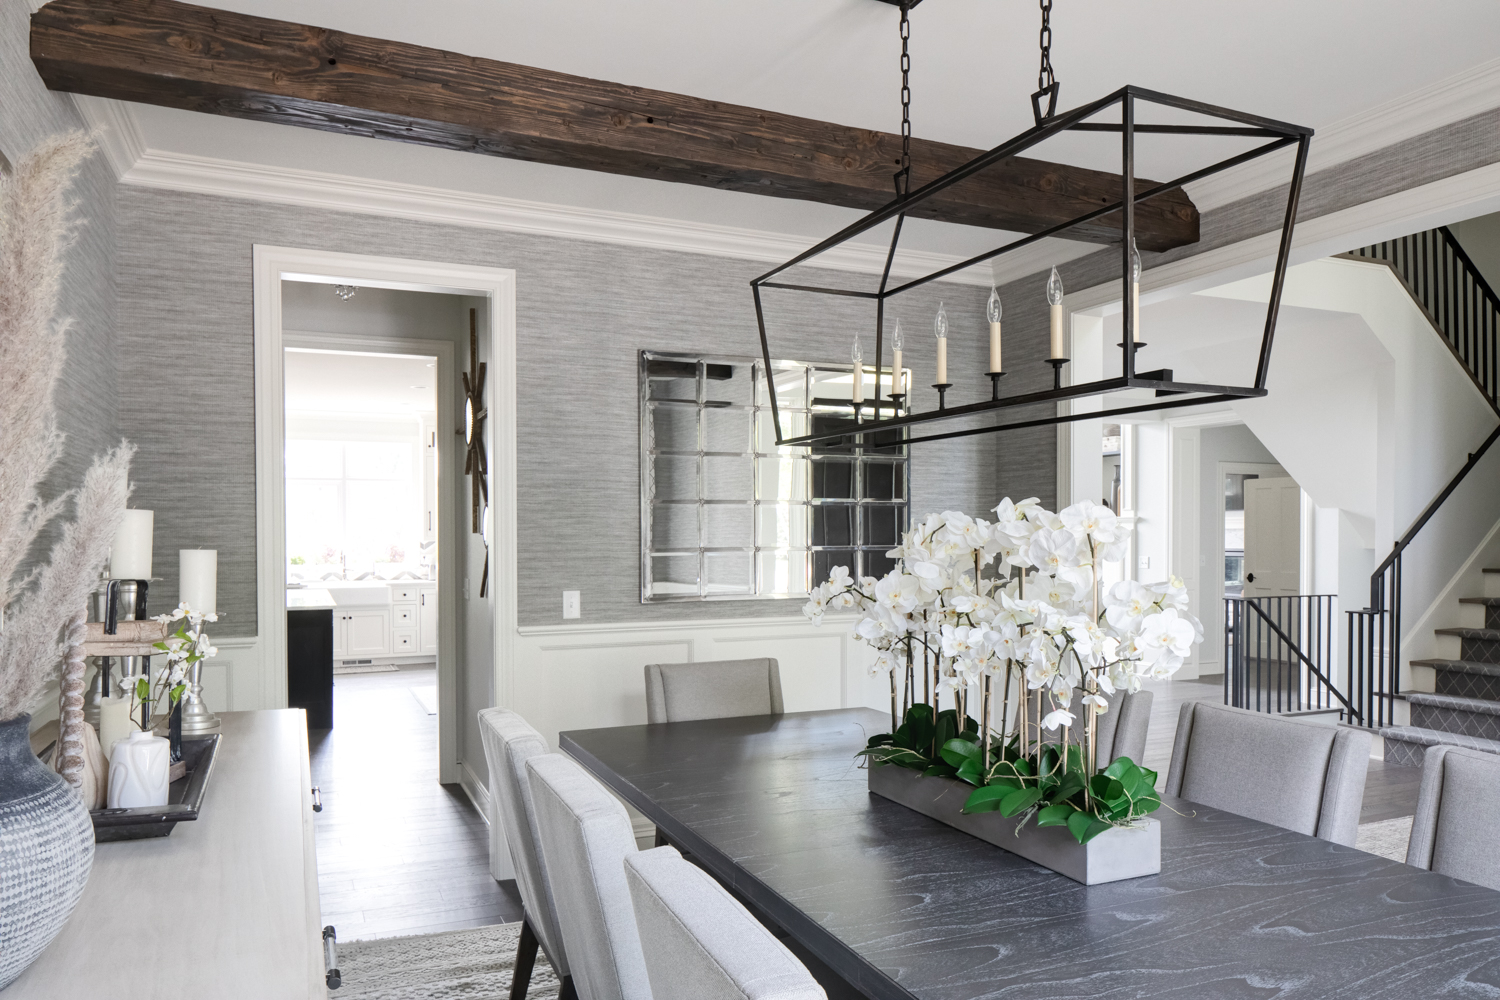 Whole-home Renovation by Revision